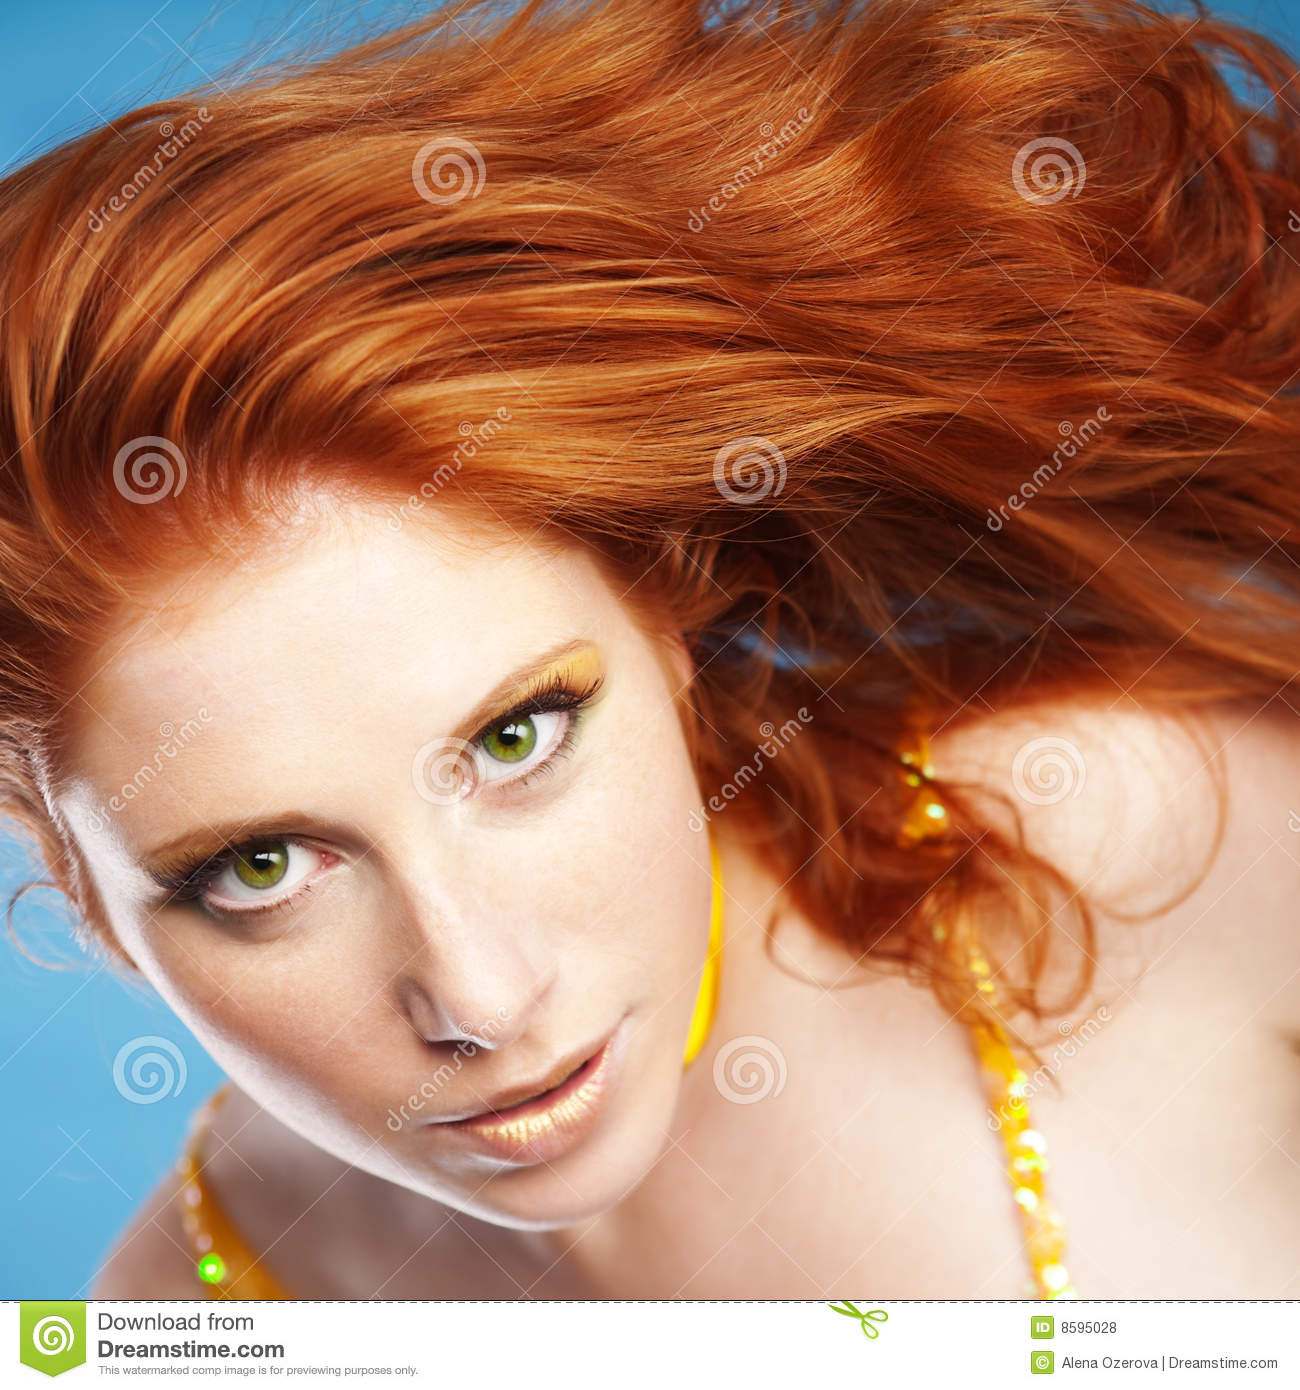 Question Should free adult redhead